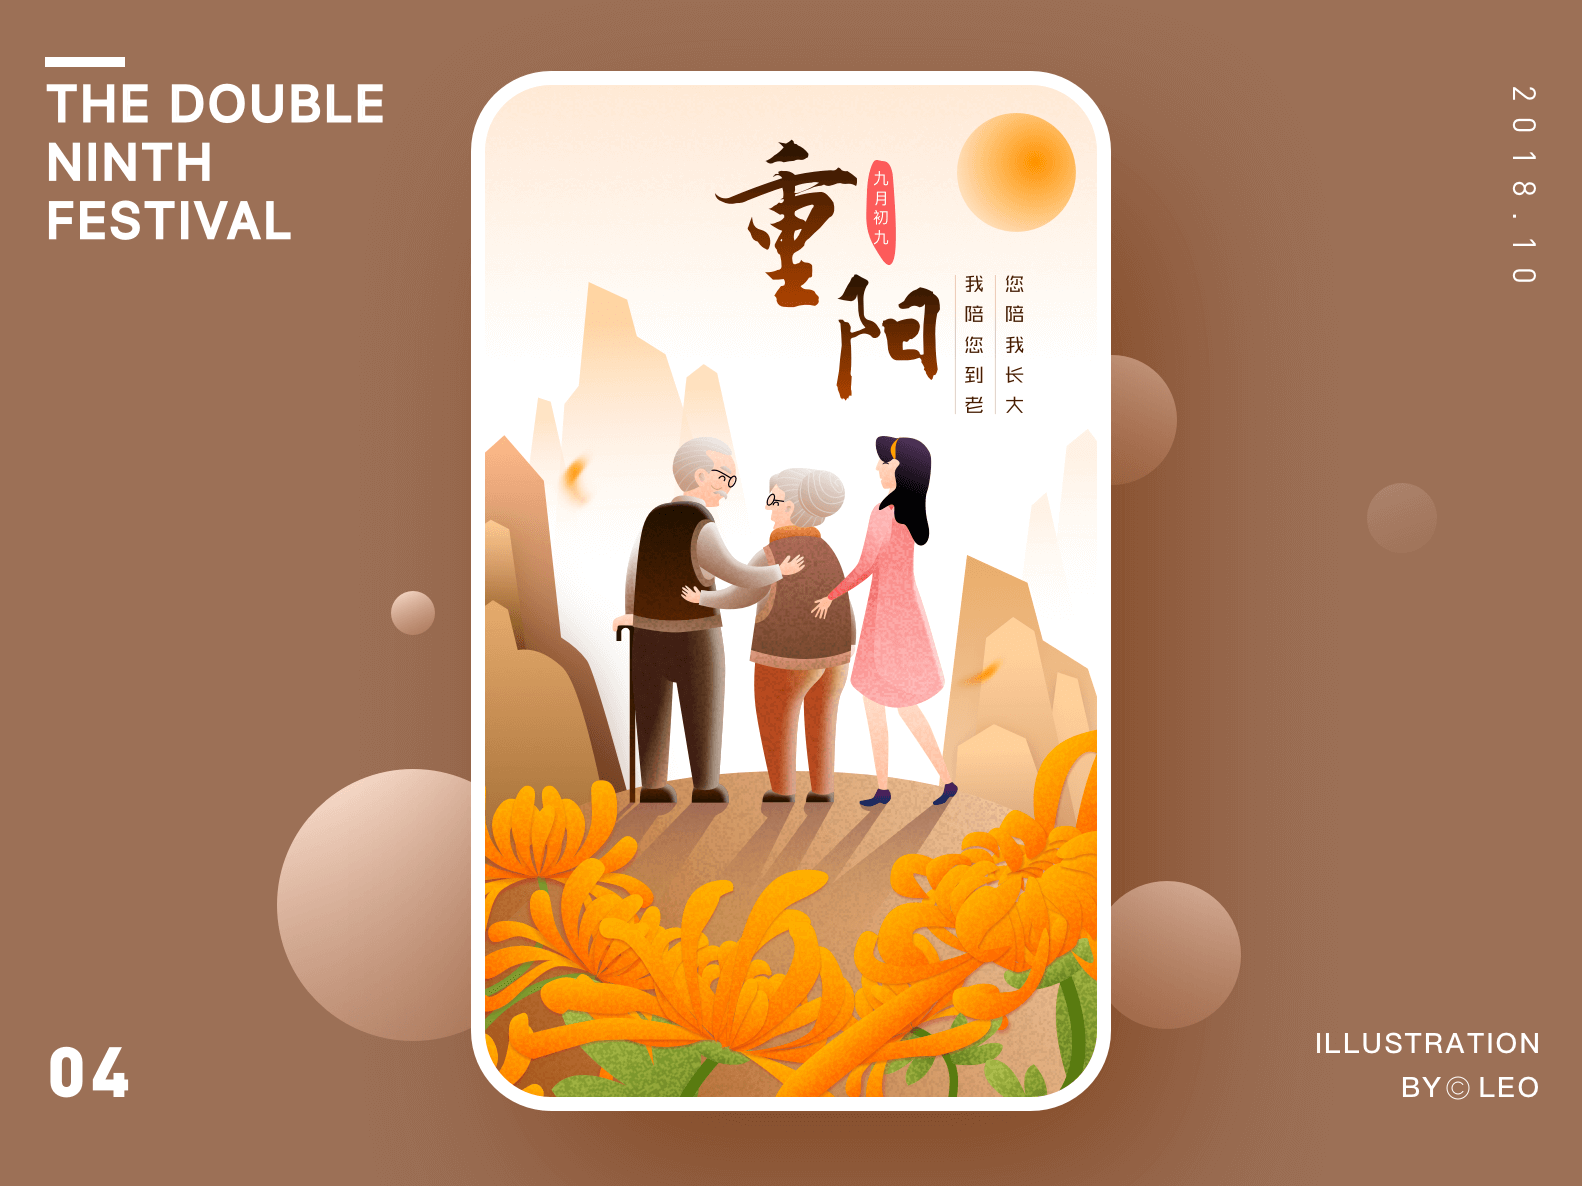 THE DOUBLE NINTH FESTIVAL by L...